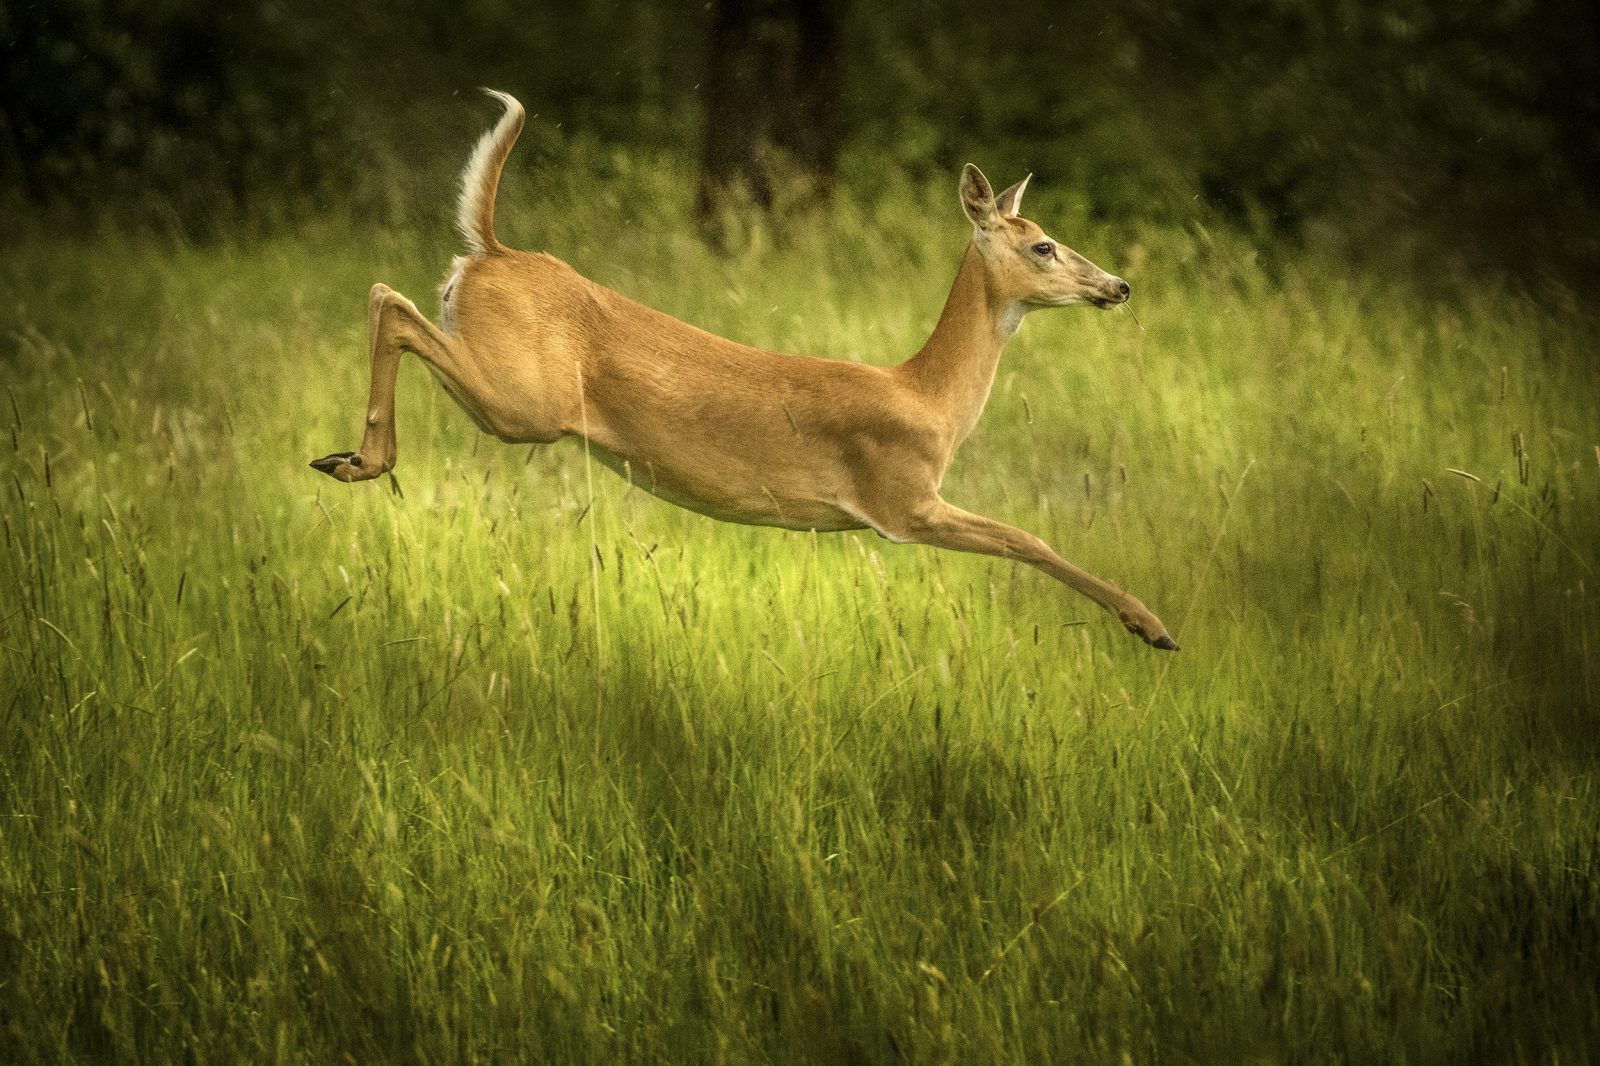 Flight of the White Tail